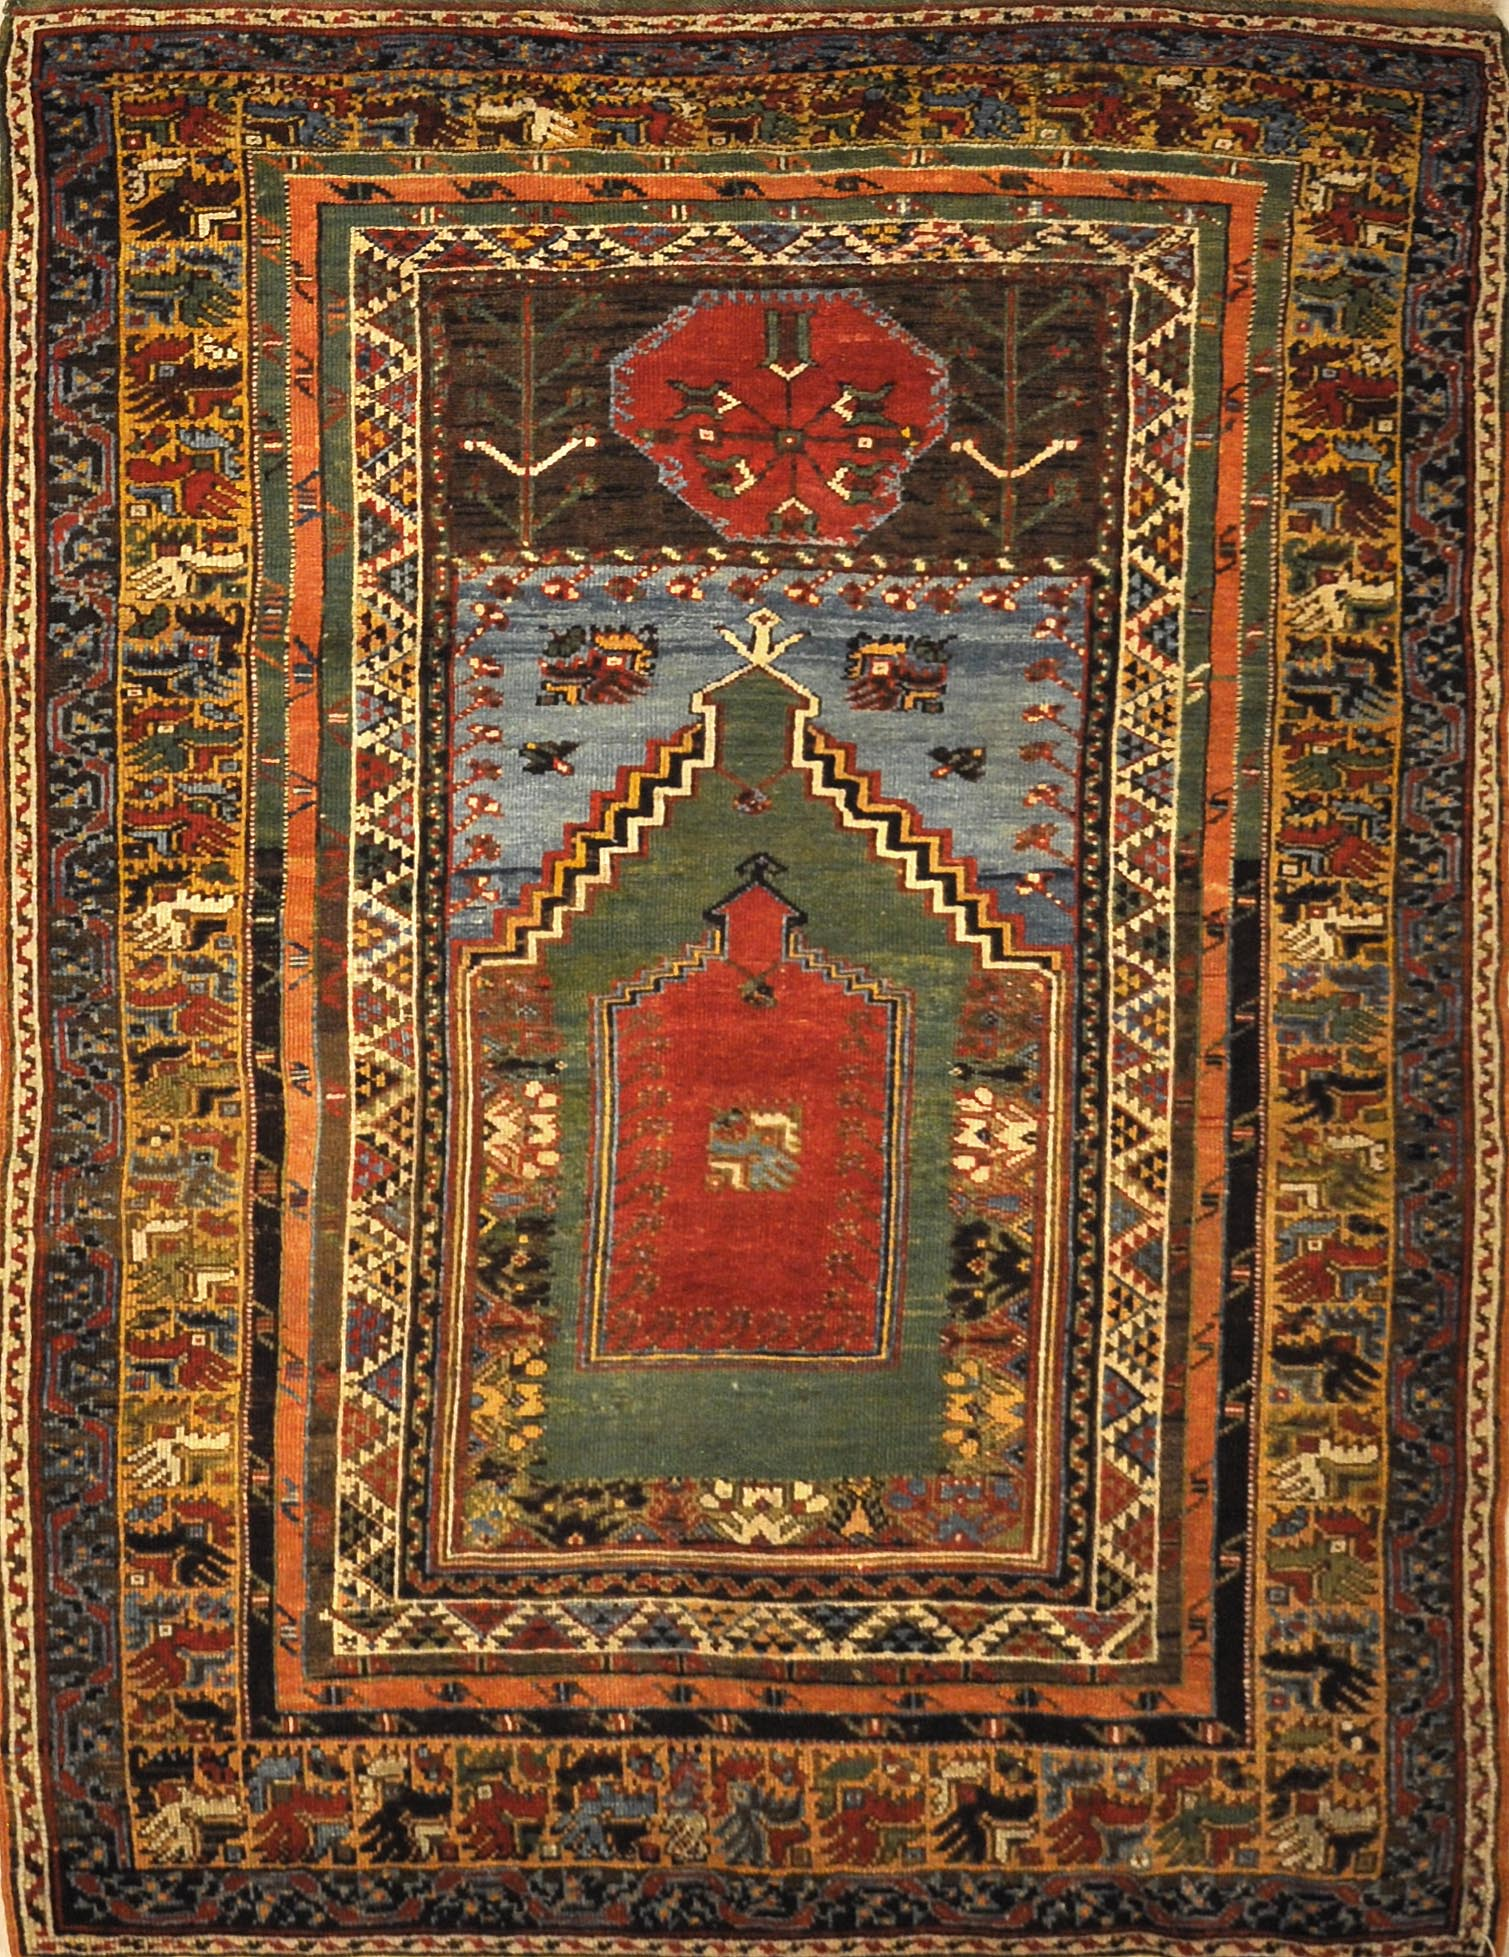 This Mudjur Meditation Prayer Rug has the richest palette of all Anatolian rugs, and resemble the very fine Caucasian rugs.This Mudjur Meditation Prayer Rug has the richest palette of all Anatolian rugs, and resemble the very fine Caucasian rugs.